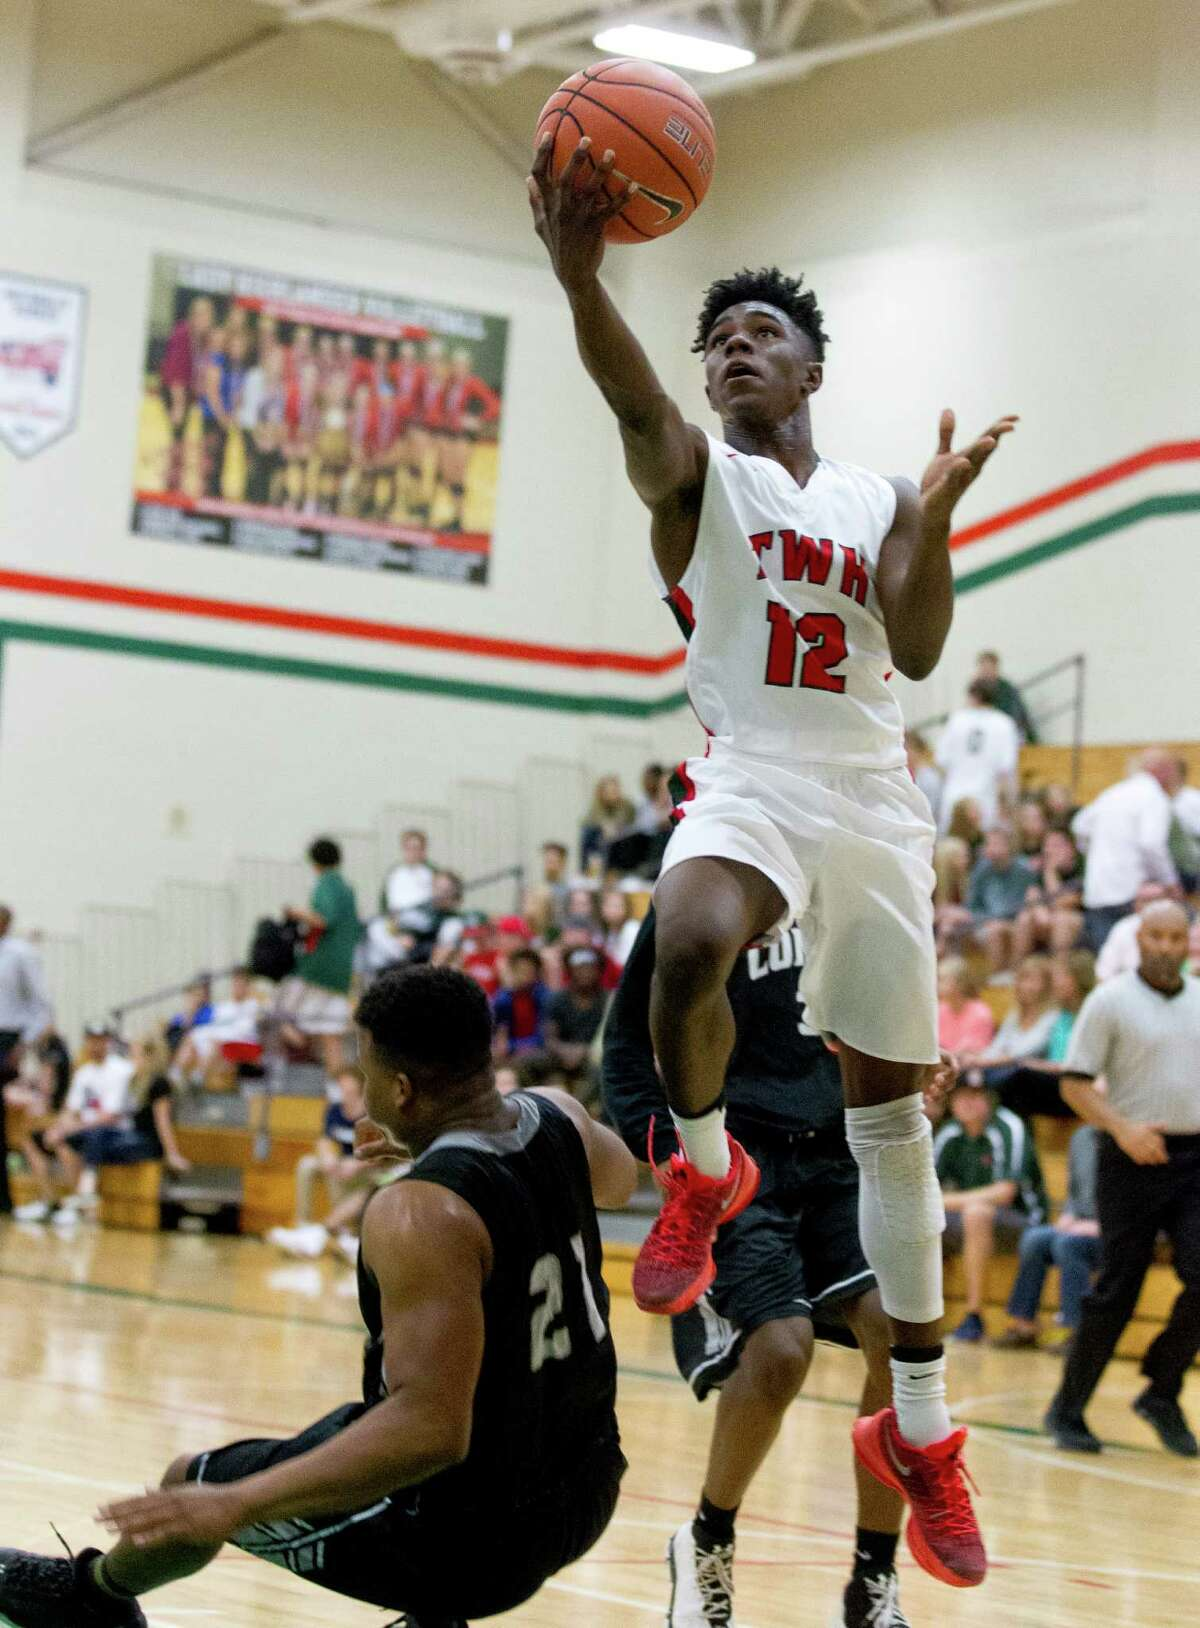 The Woodlands guard Kesean Carter (12) makes a layup past Conroe center Lavery Sheperd (21) during the first quarter of a District 12-6A high school boys basketball game at The Woodlands High School Tuesday, Feb. 7, 2017, in The Woodlands. The Woodlandsdefeated Conroe 72-52.